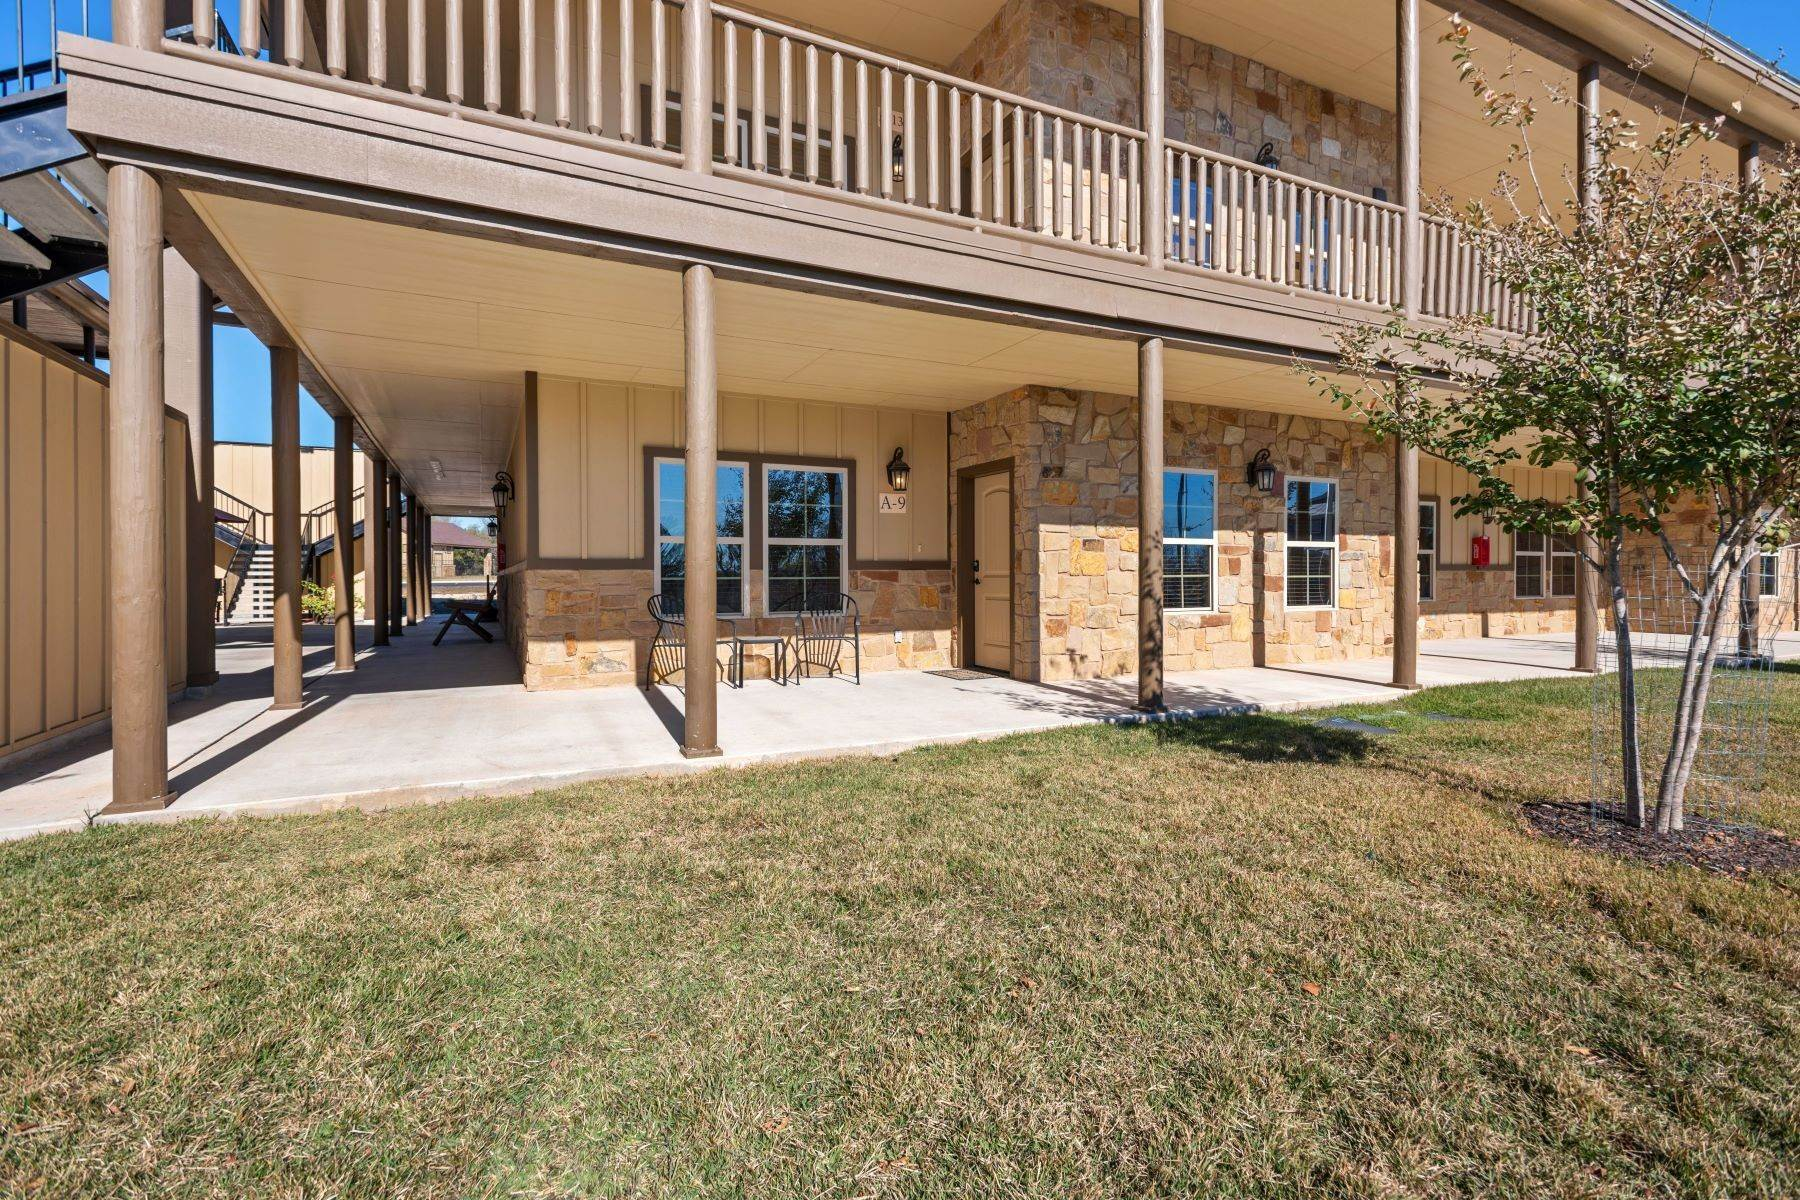 Single Family Homes for Sale at Fully Furnished Condo in Historic Gruene 1554 Gruene Road, Unit A9 New Braunfels, Texas 78130 United States